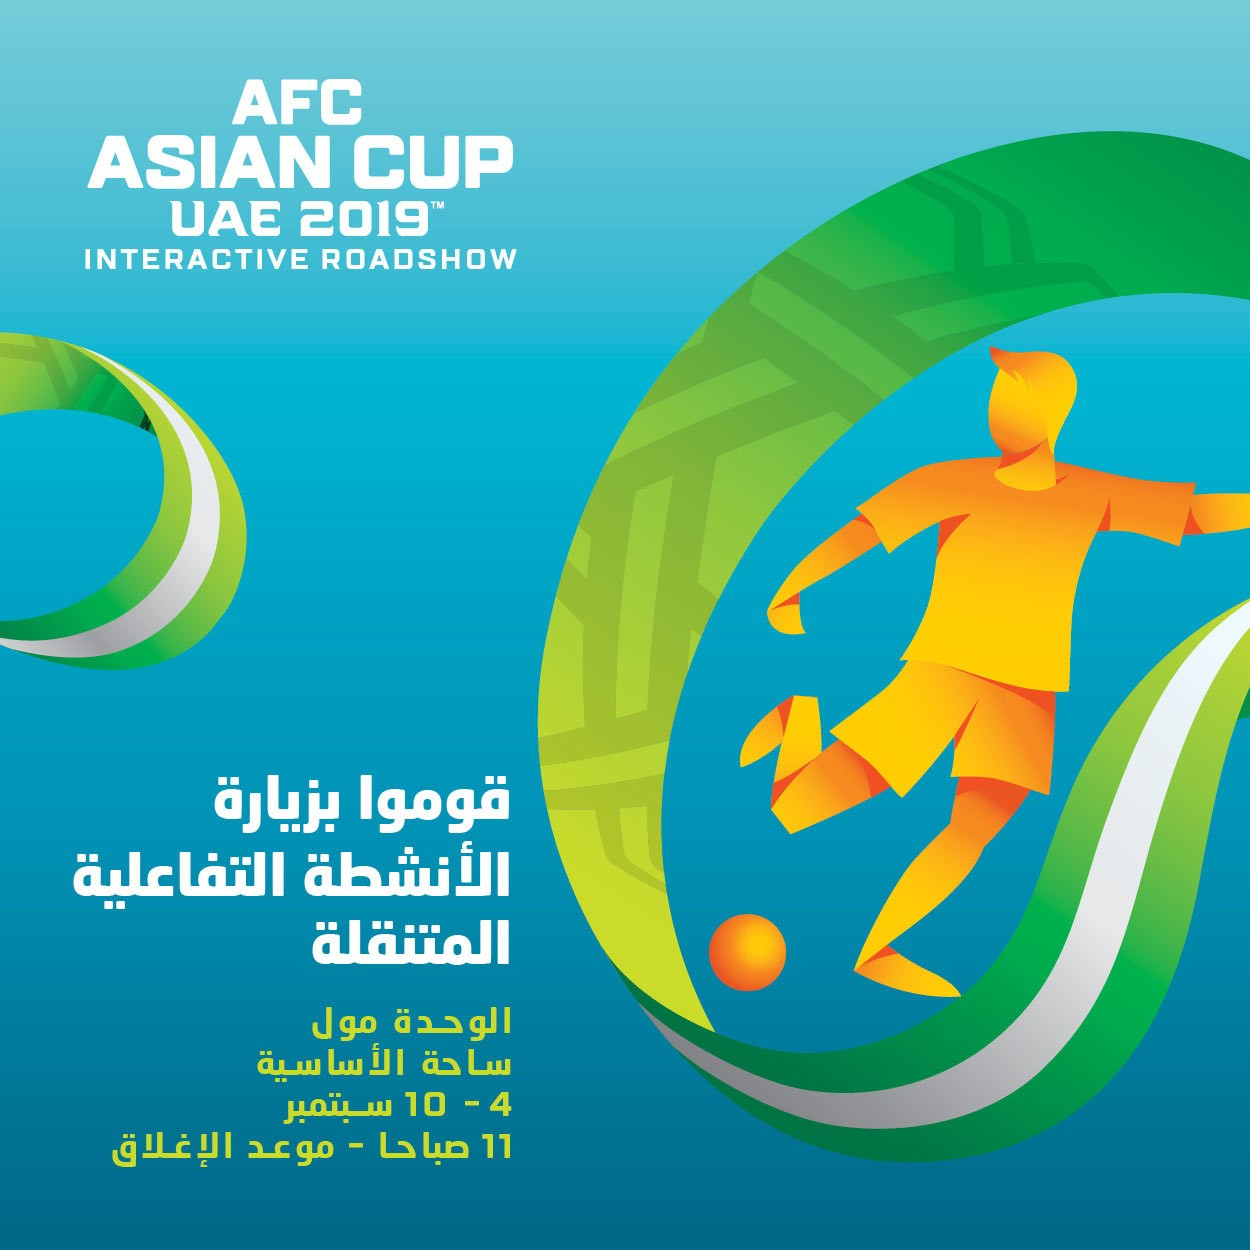 AFC-Asian-Cup-event-image2